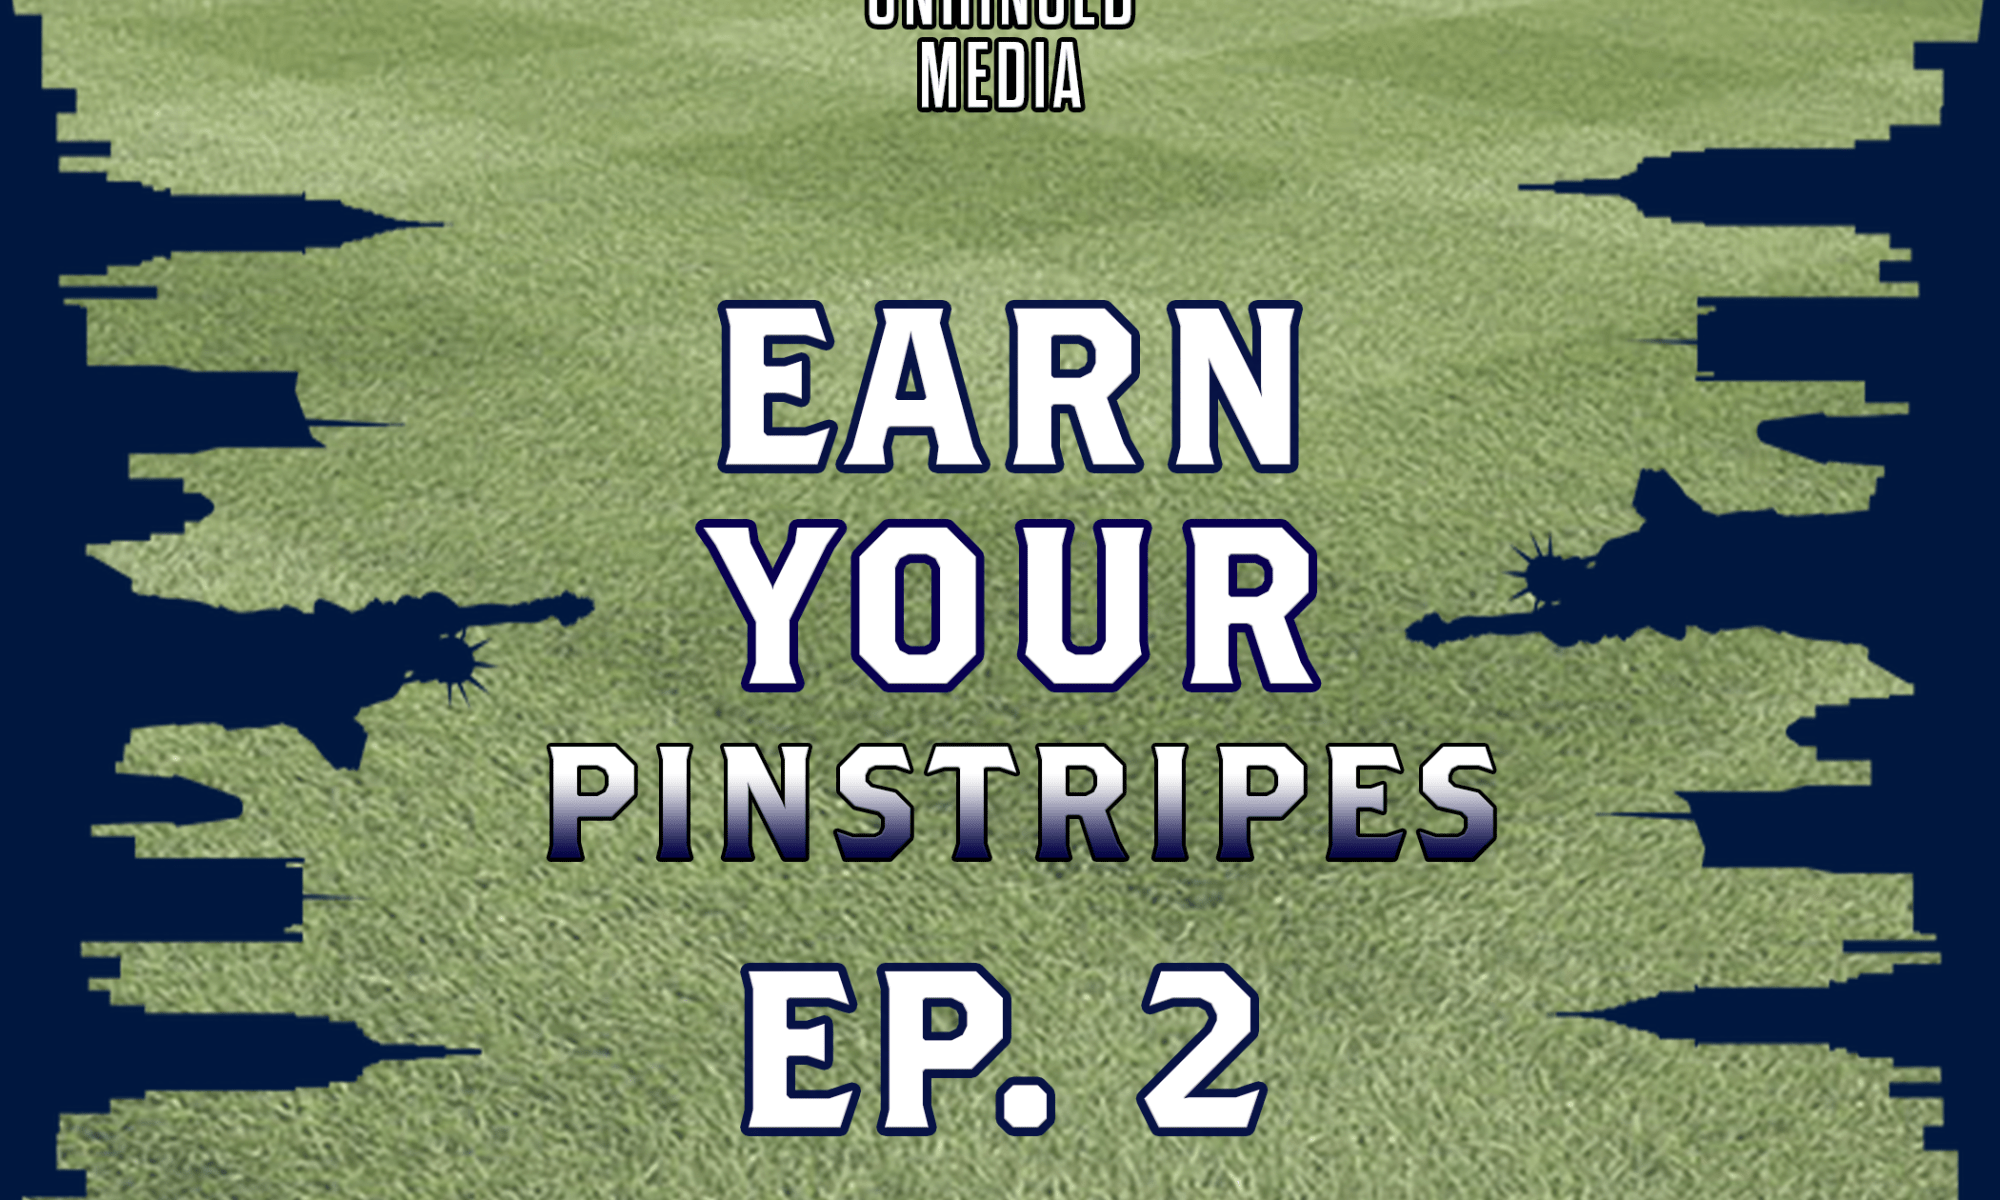 Earn Your Pinstripes